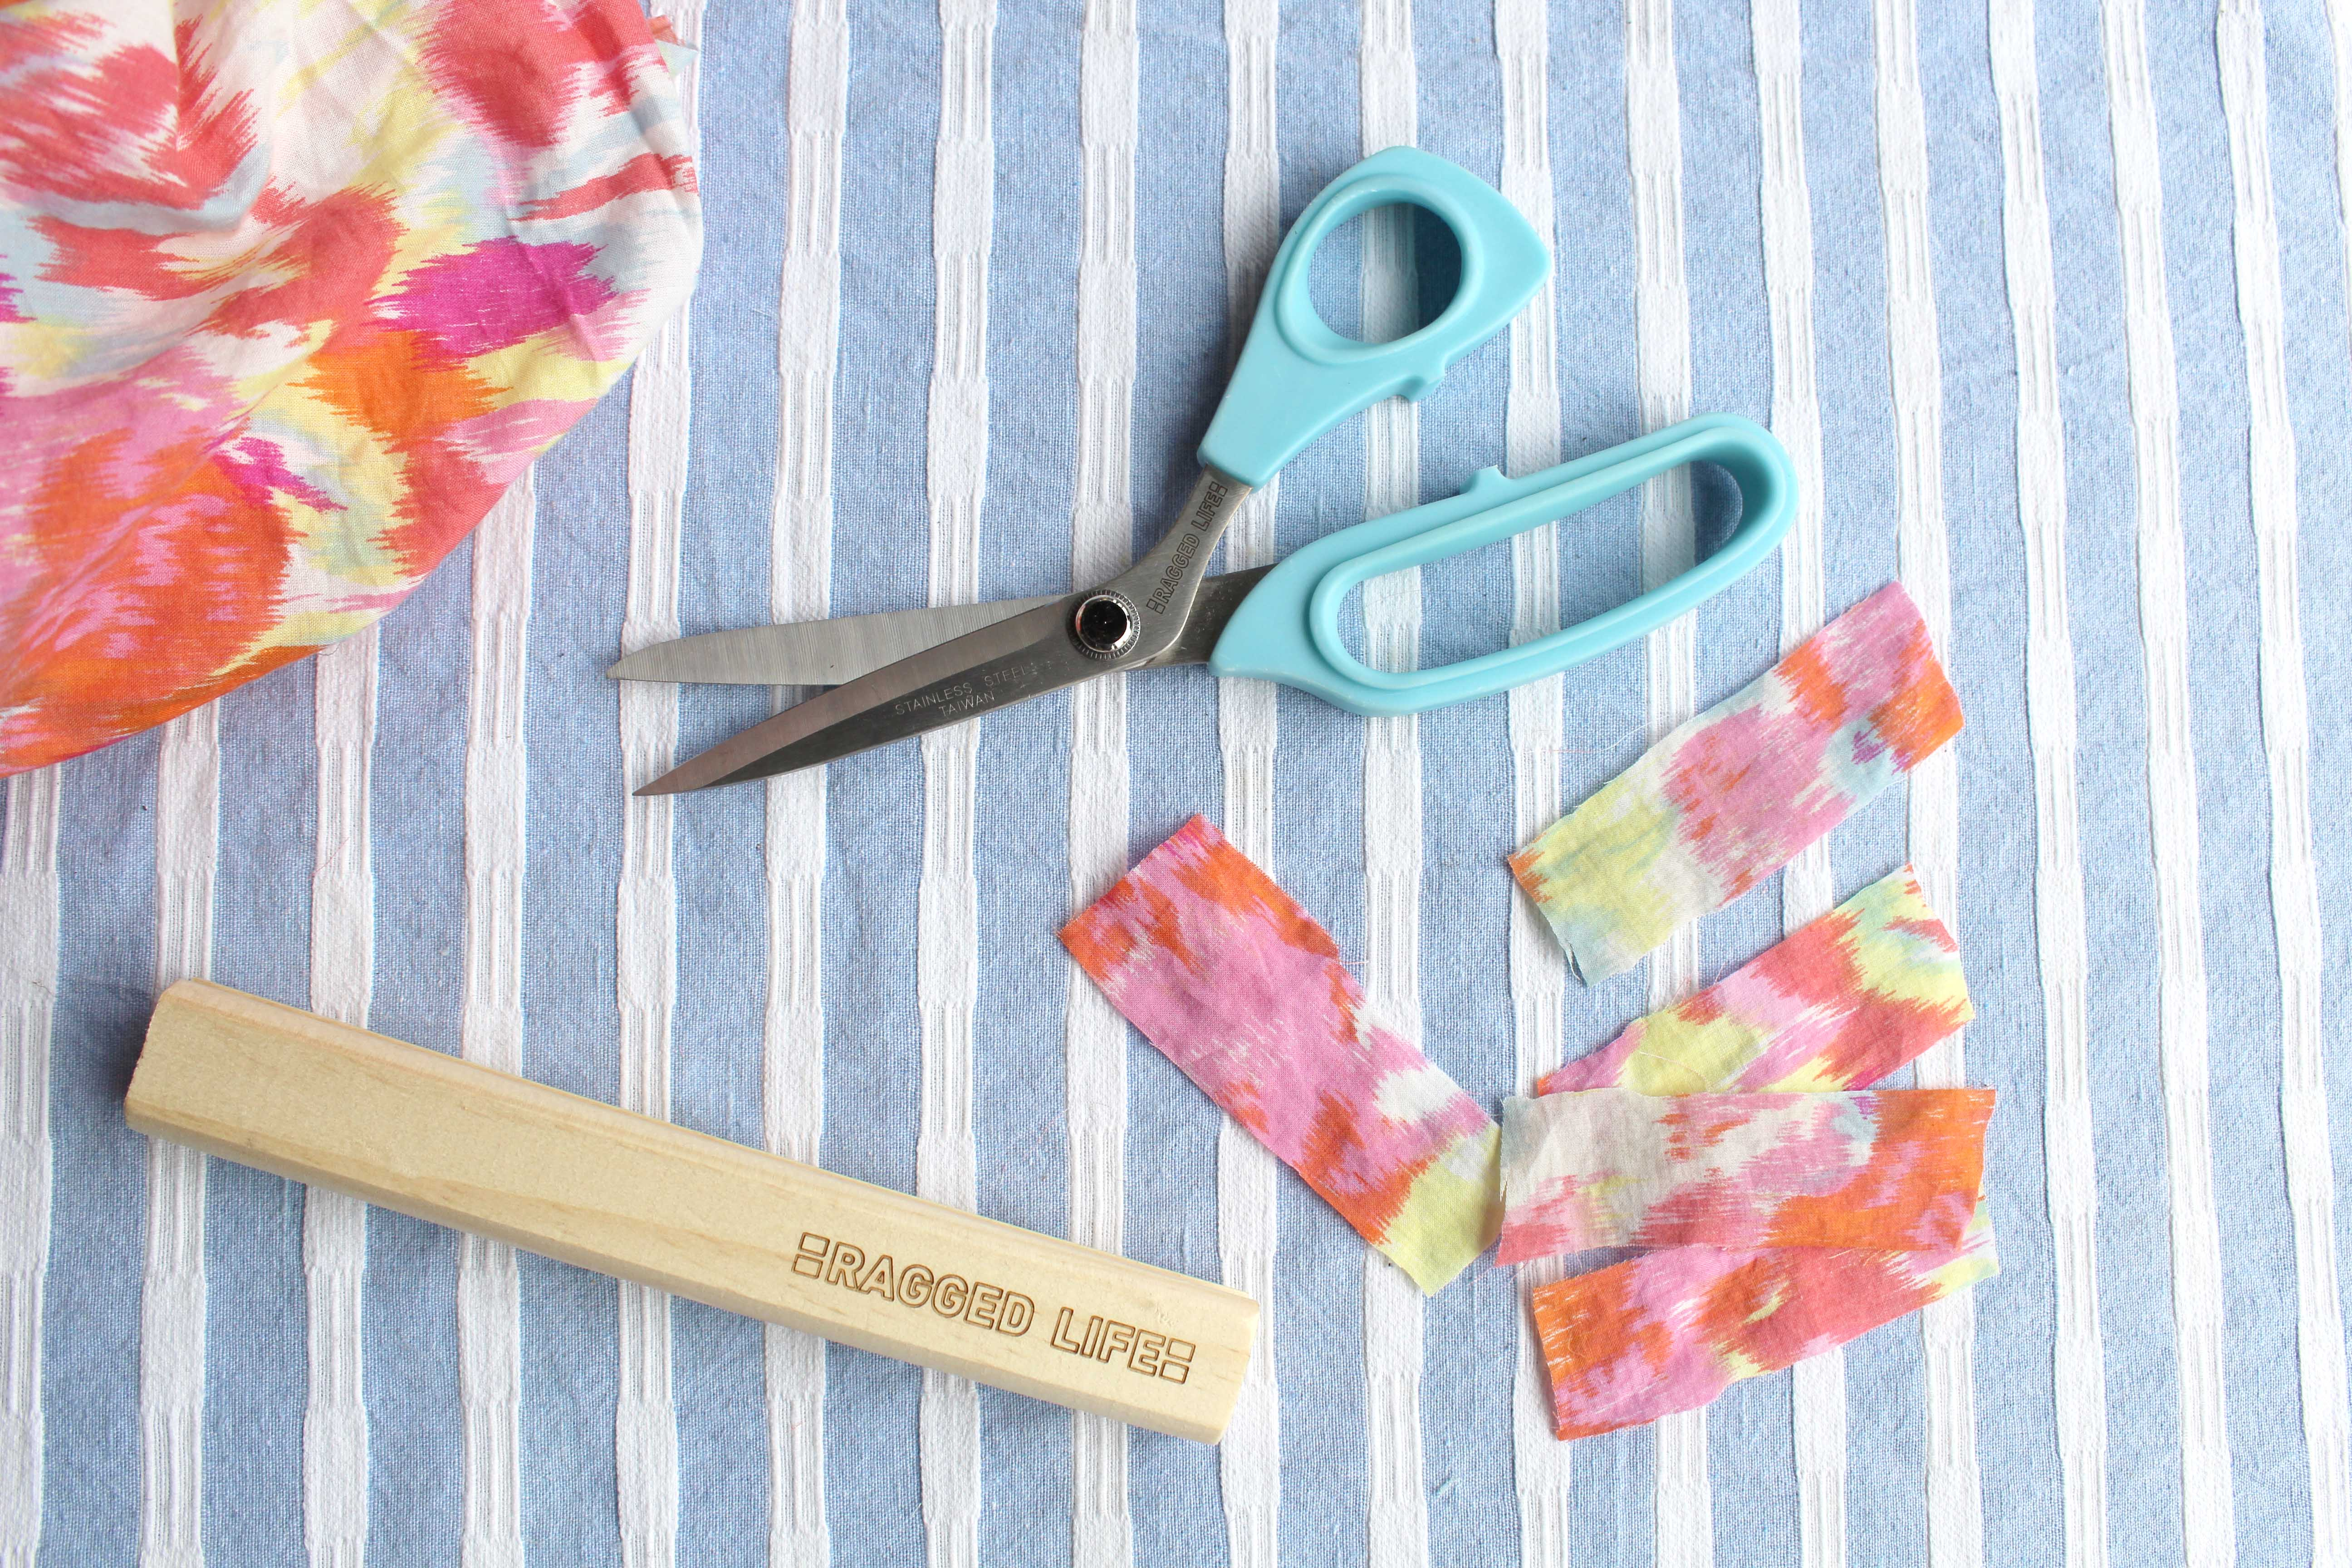 Cutting fabric for rag rugs using rag rug scissors and a wooden gauge